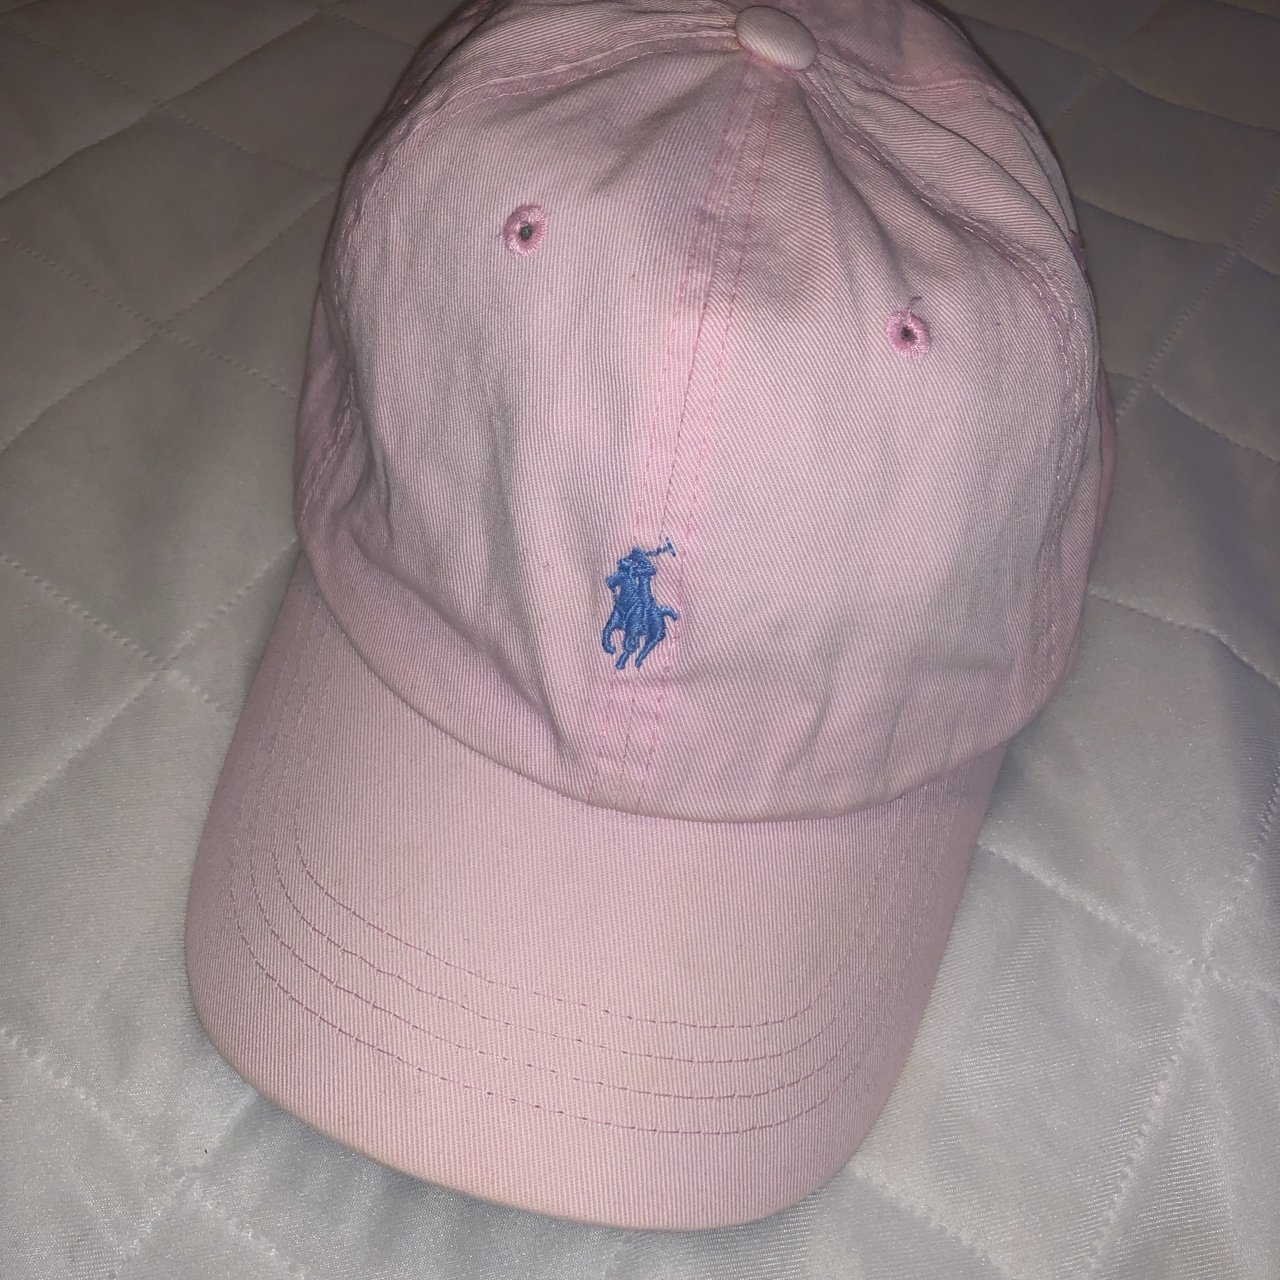 preowned vintage pale light pink polo hat with light blue - Depop 6ddca5fc993